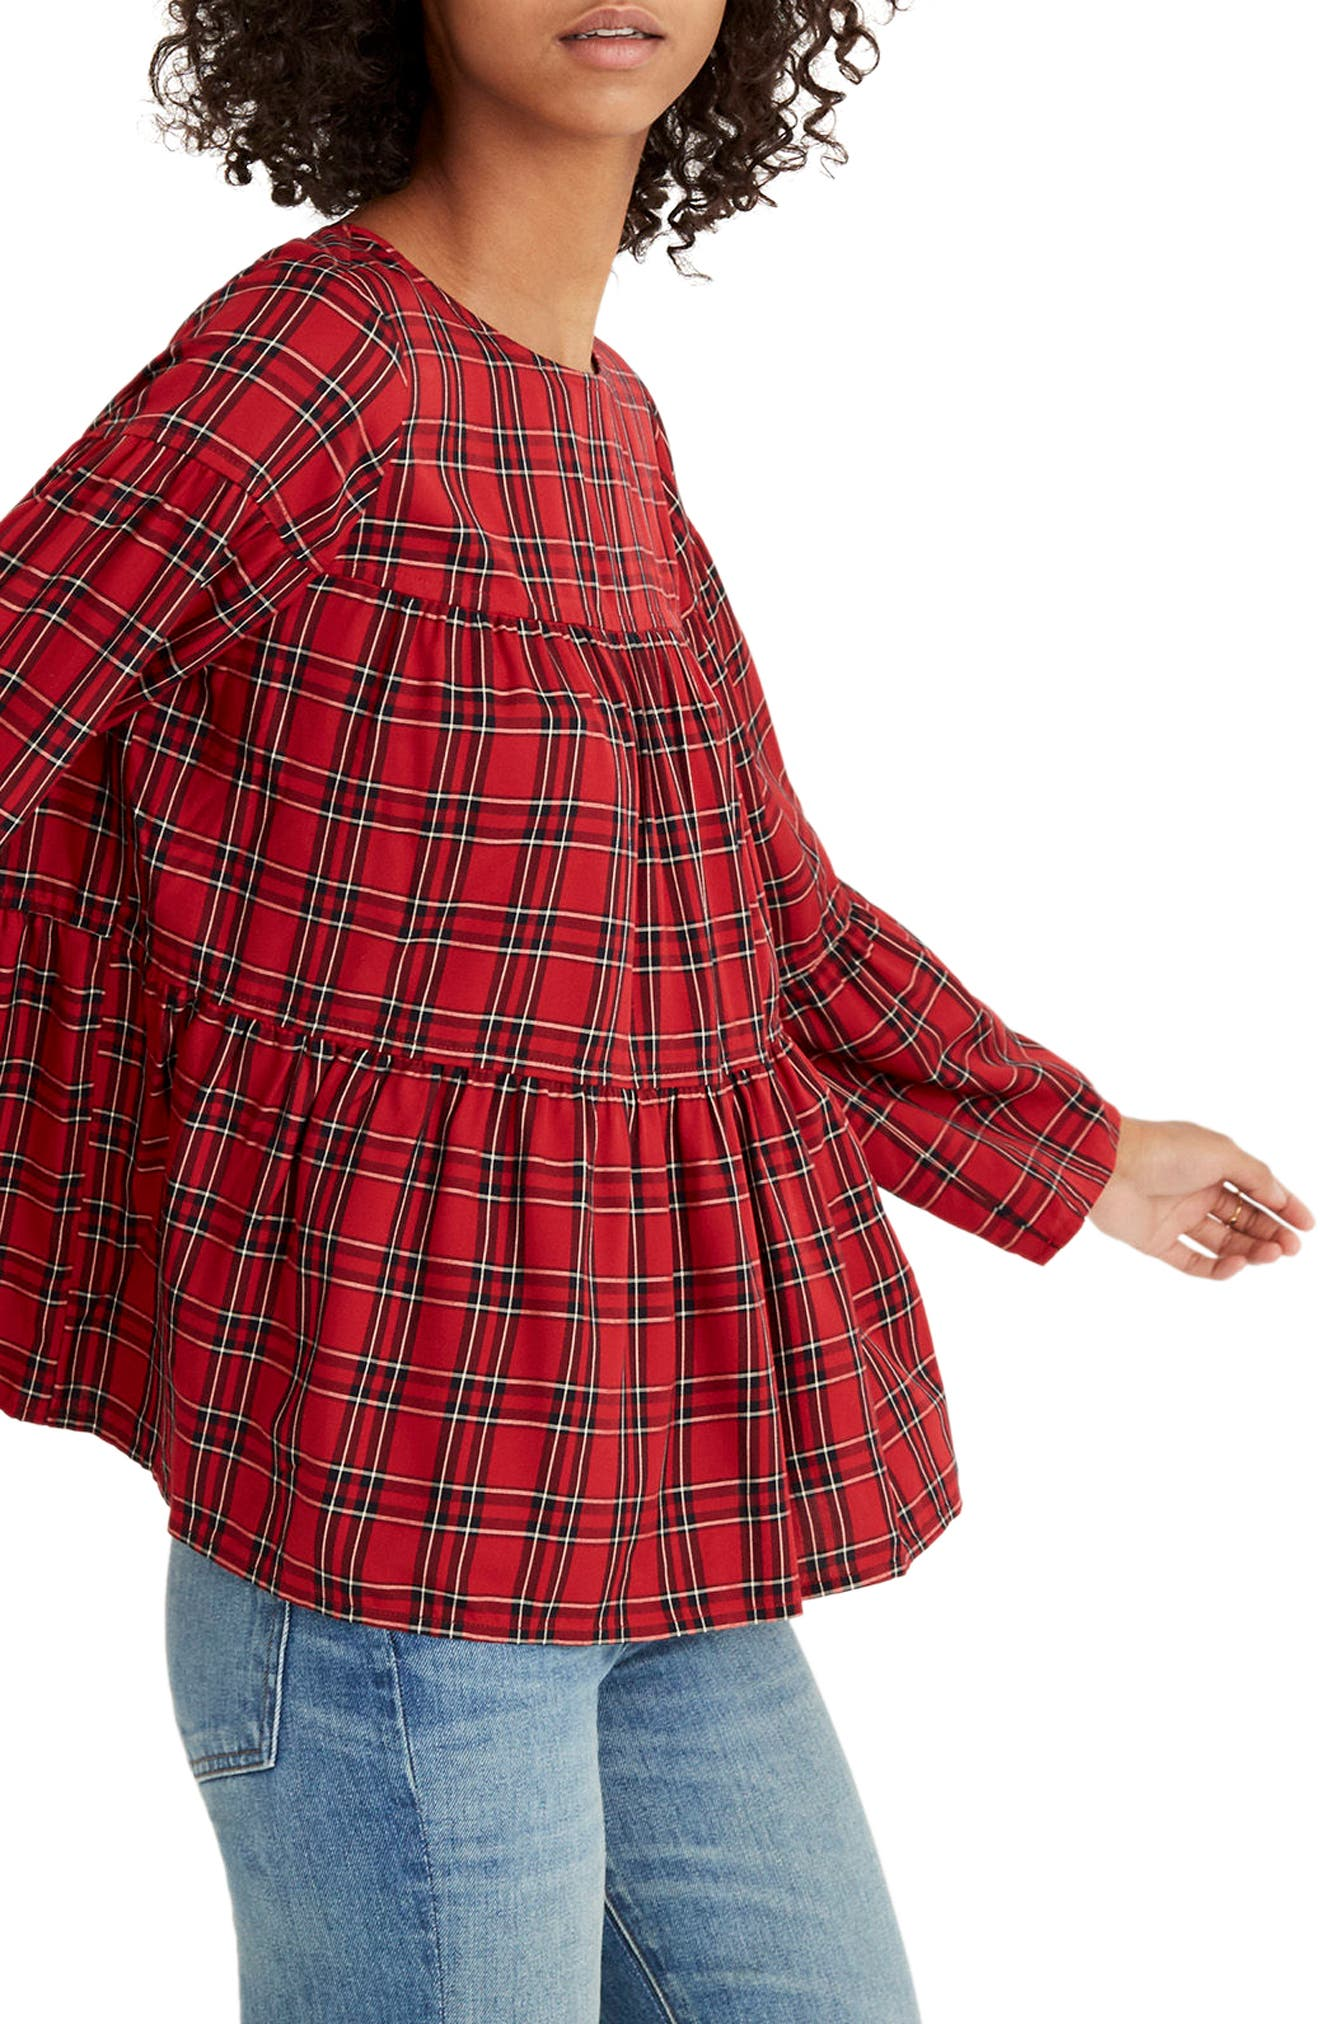 Alternate Image 3  - Madewell Plaid Tiered Button Back Top